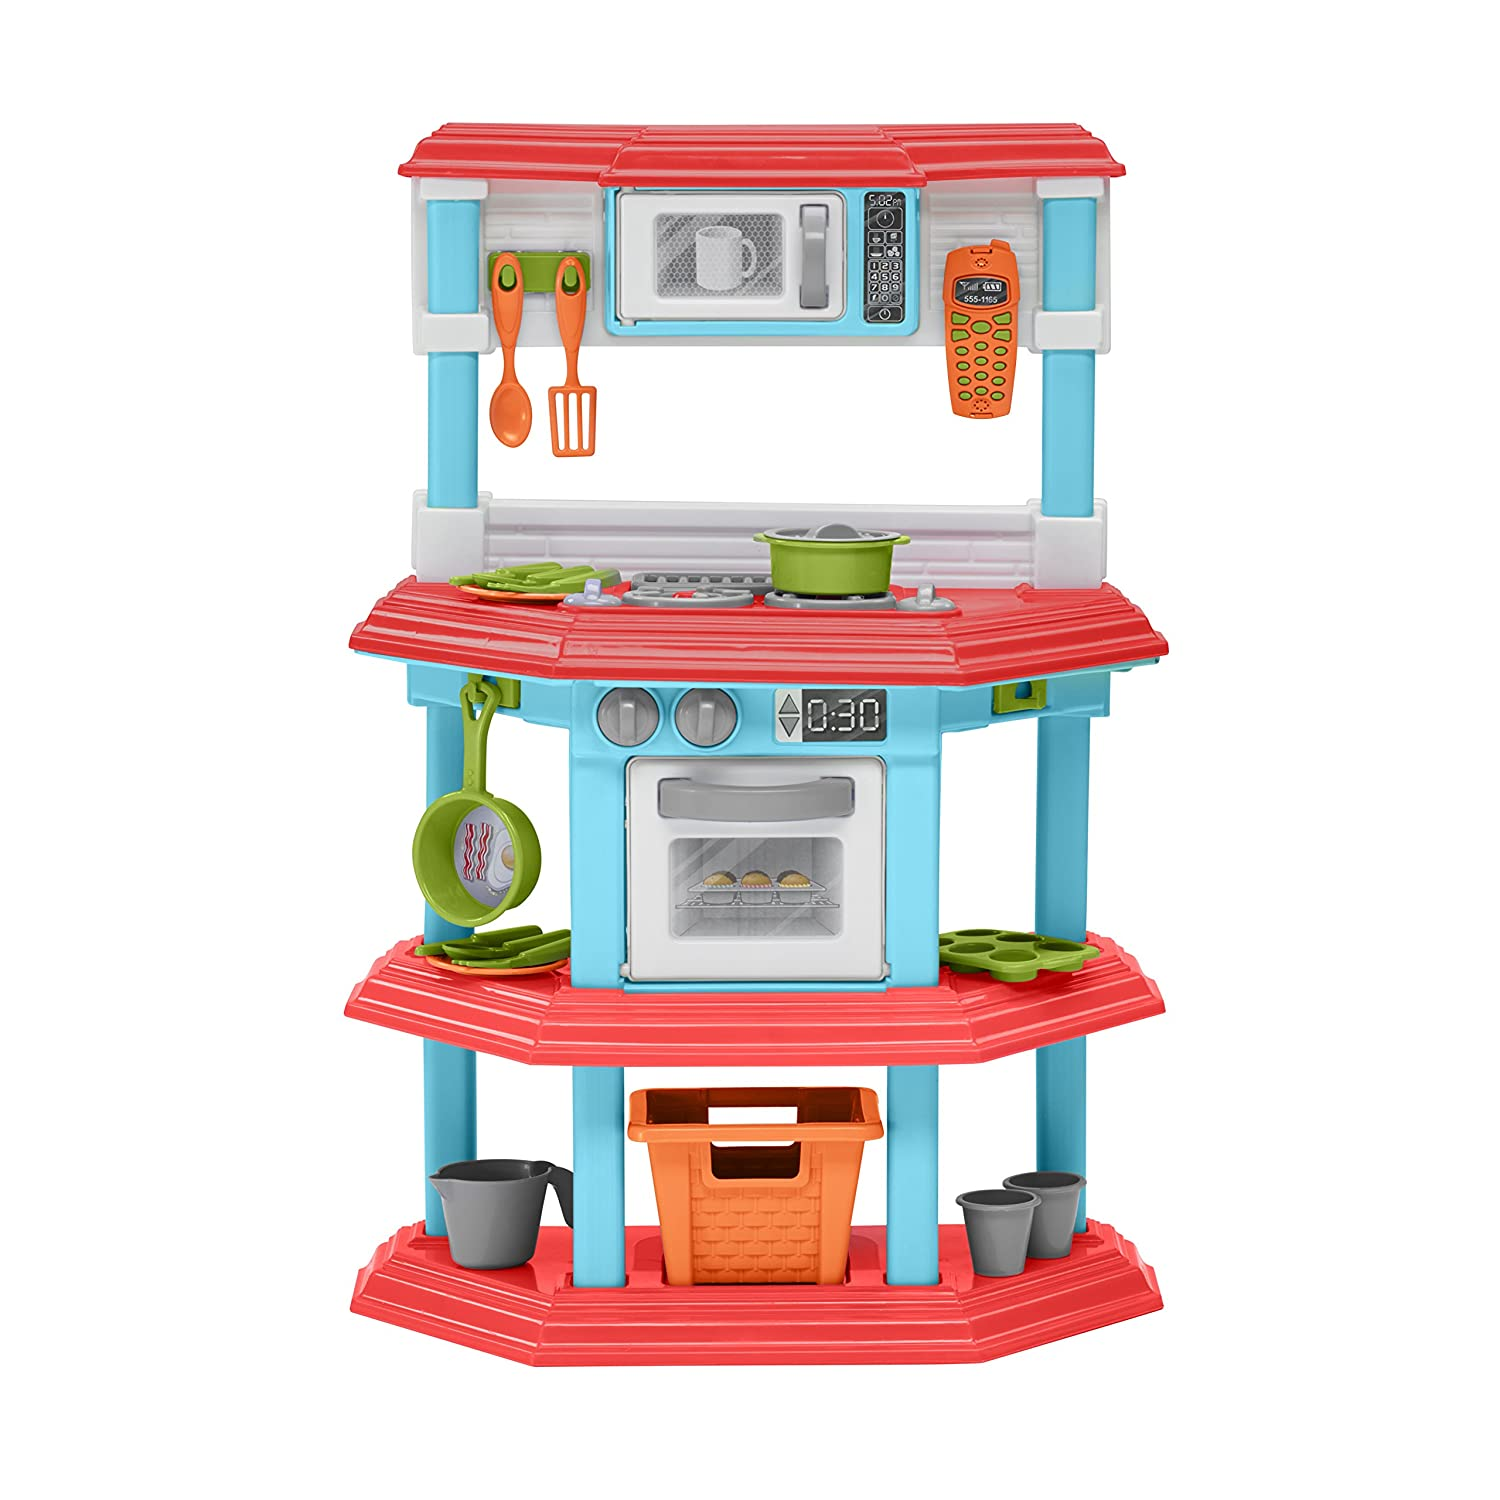 American Plastic Toys My Very Own Gourmet Kitchen Playset with 23 Accessories